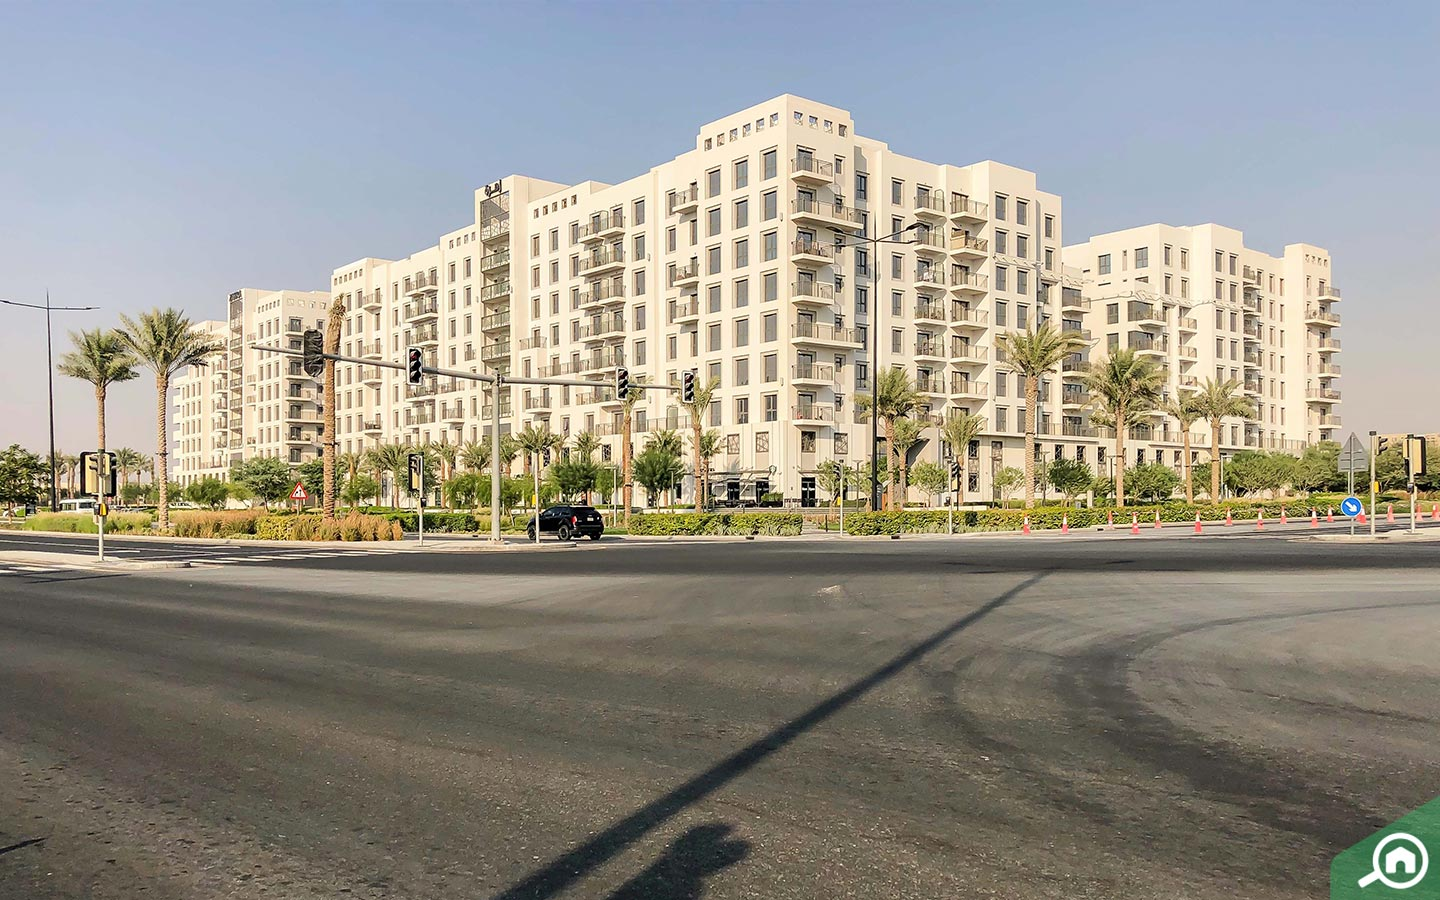 View of Zahra Apartments location, which has apartments for sale in Town Square Dubai